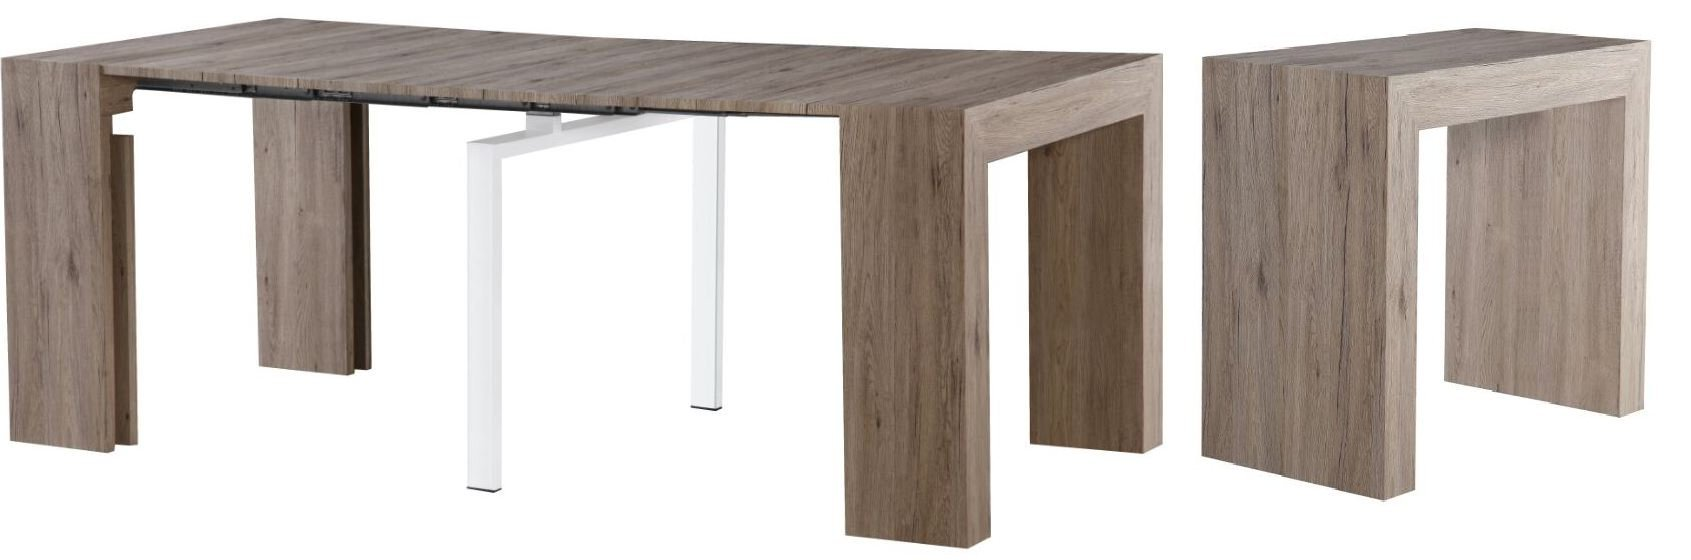 Extendable Space Saving Modern Dining Table, Transforms From a Console Table or Desk to a Large Dining Table That Seats Up to Twelve, By MiniMax Decor